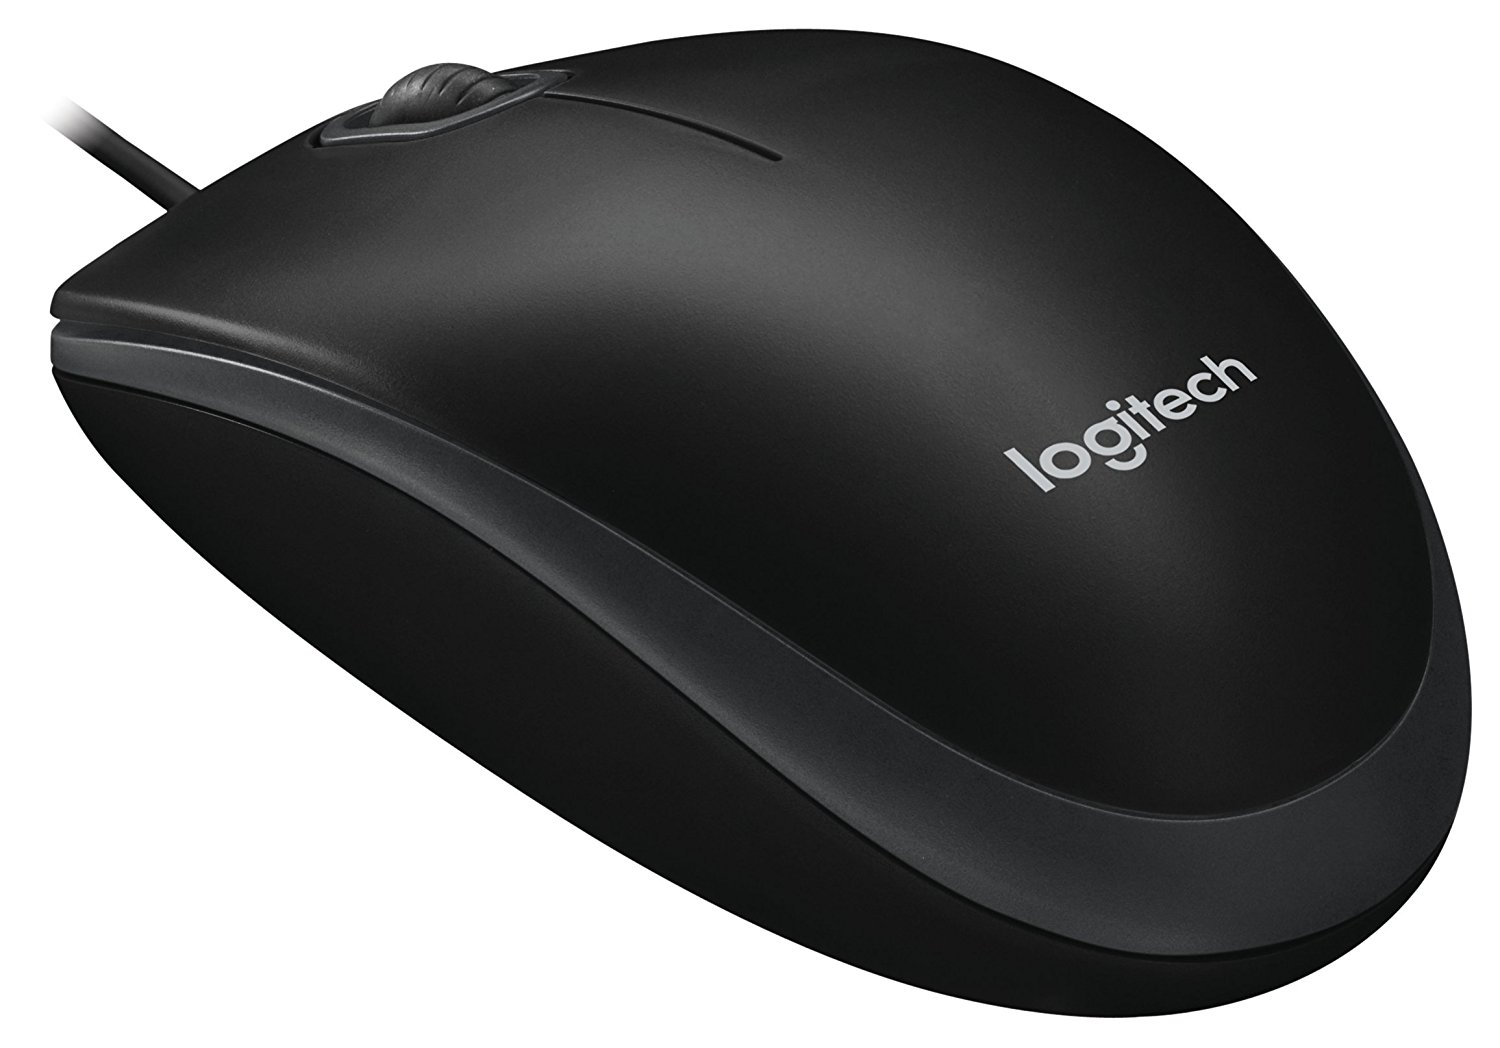 https://bonetel.co.rs/media/logitech-b100a.jpg